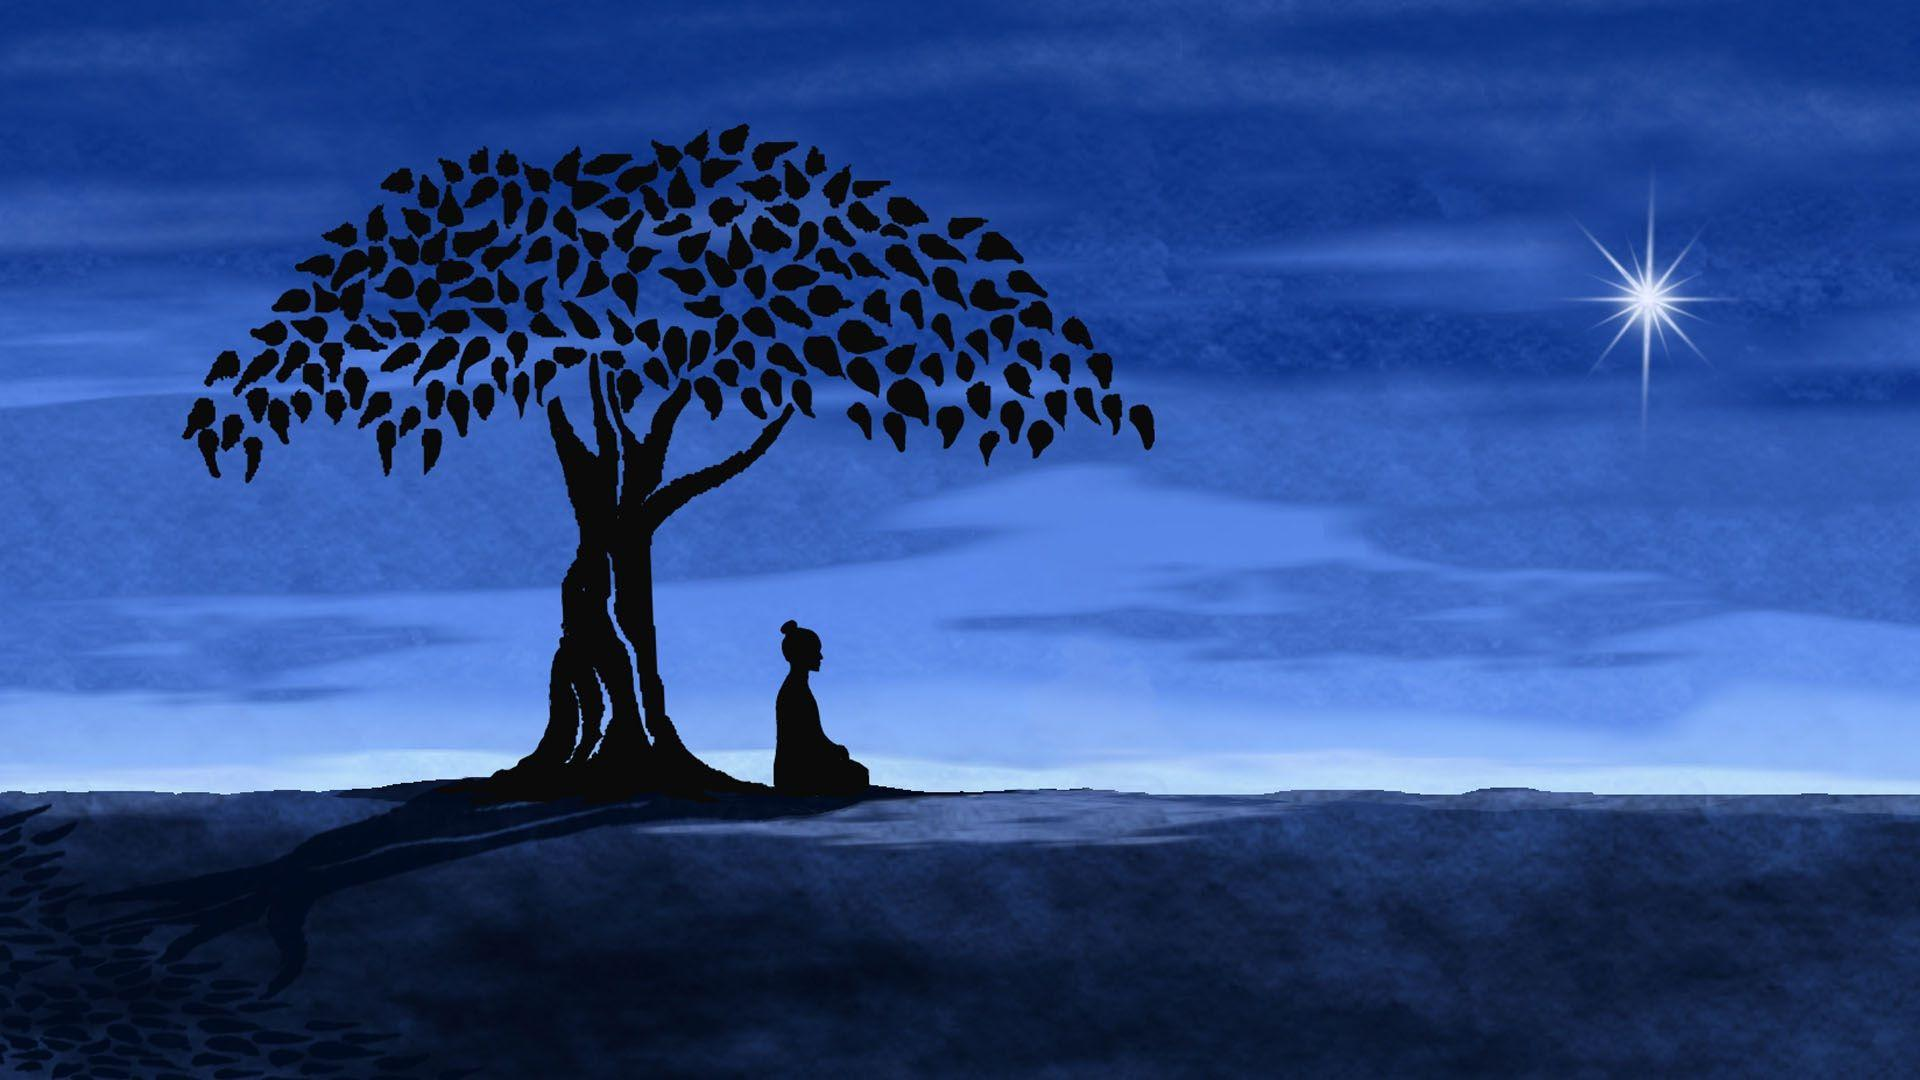 Buddha wallpapers for your desktop free download 7